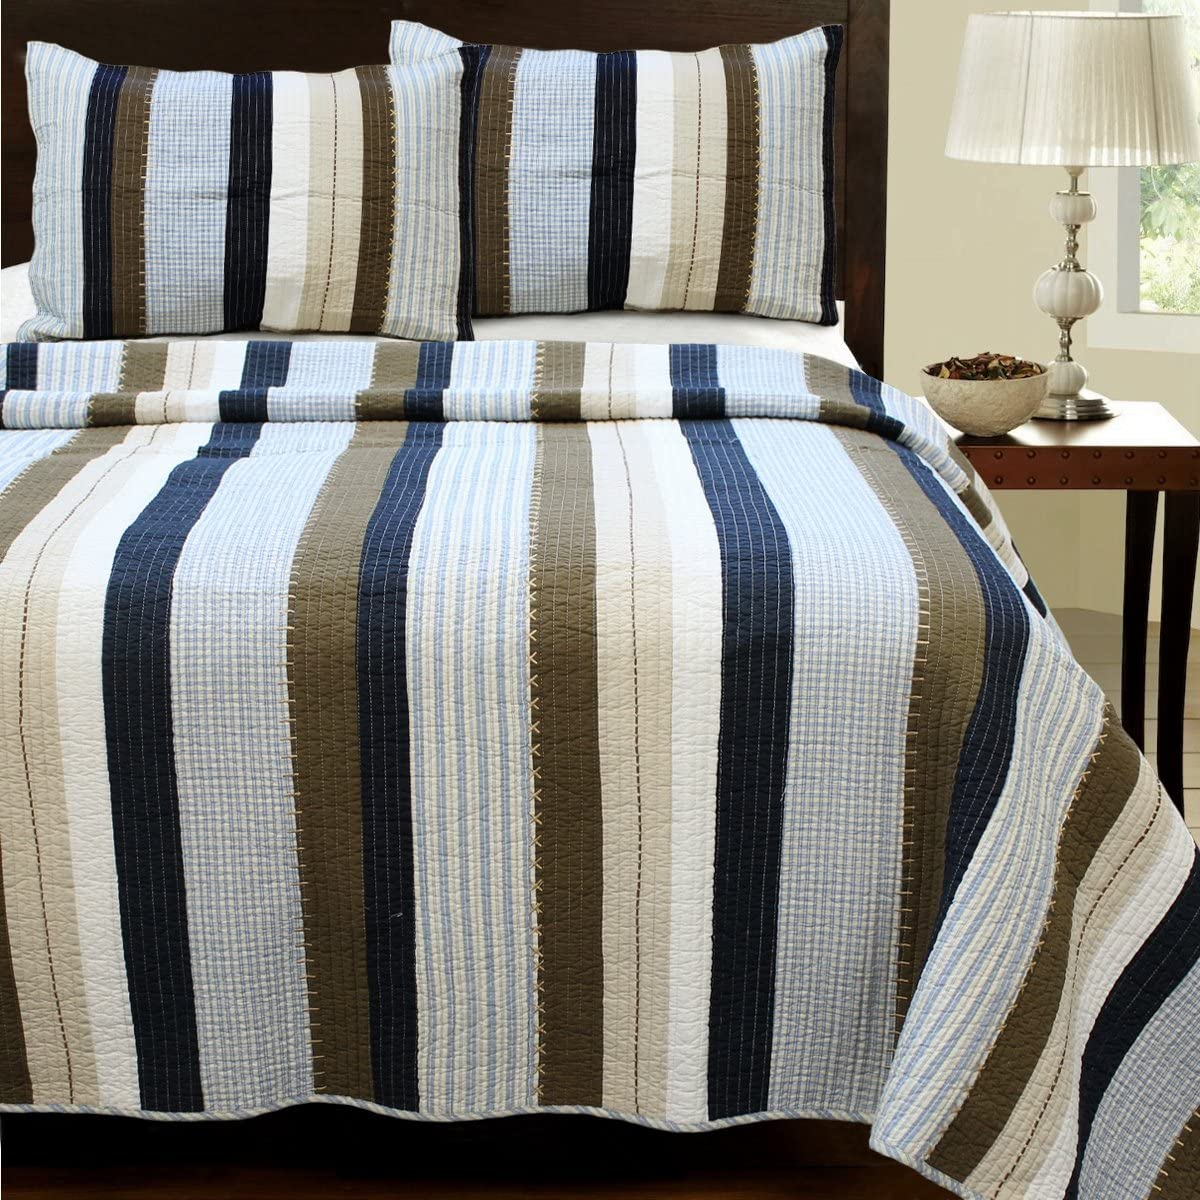 Cozy Line Home Fashions Nathan Quilt Bedding Set, Navy/Blue/White/Brown Plaid Striped 100% Cotton, Reversible Coverlet, Bedspread Set (Nathan Stripe, Queen -3 Piece)